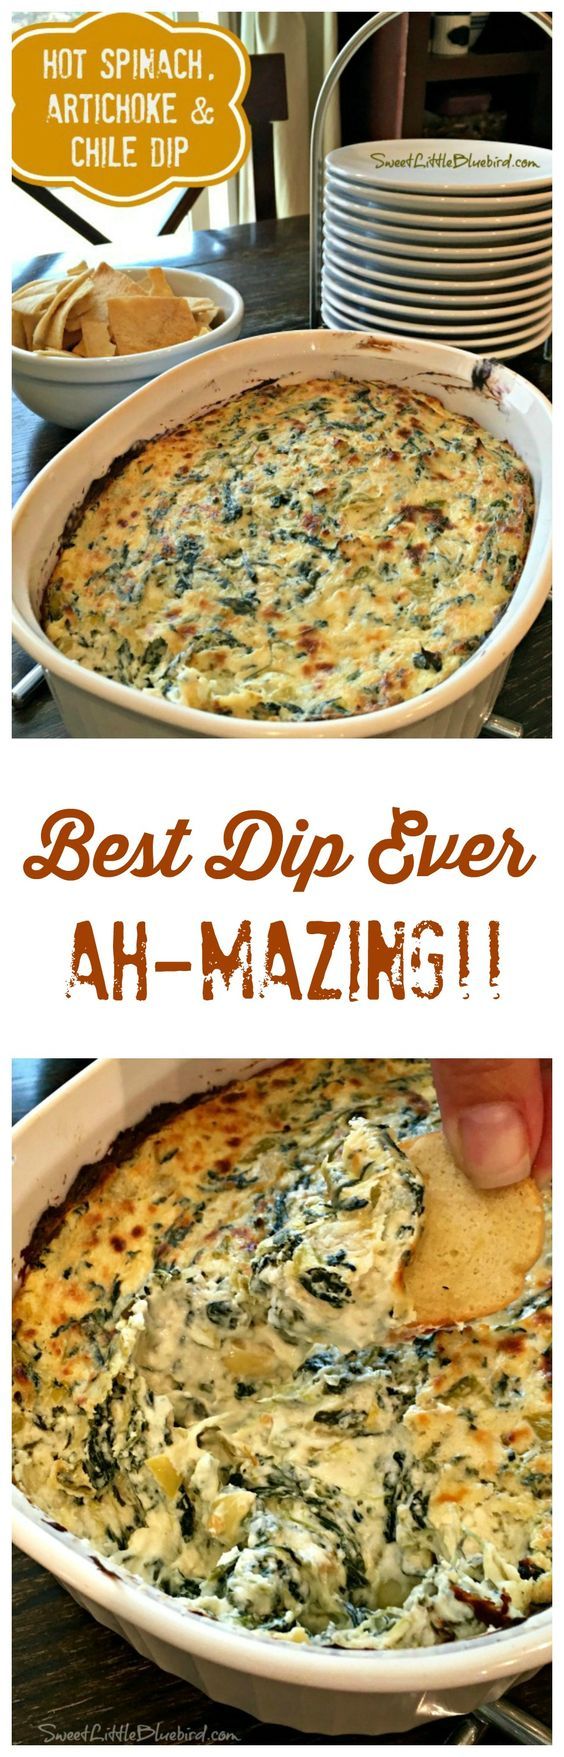 HOT SPINACH, ARTICHOKE & CHILE DIP - Just one word to describe this awesome dip recipe...AH-MAZING!! The BEST Spinach Artichoke Dip I've ever had!! Simple to make too!!